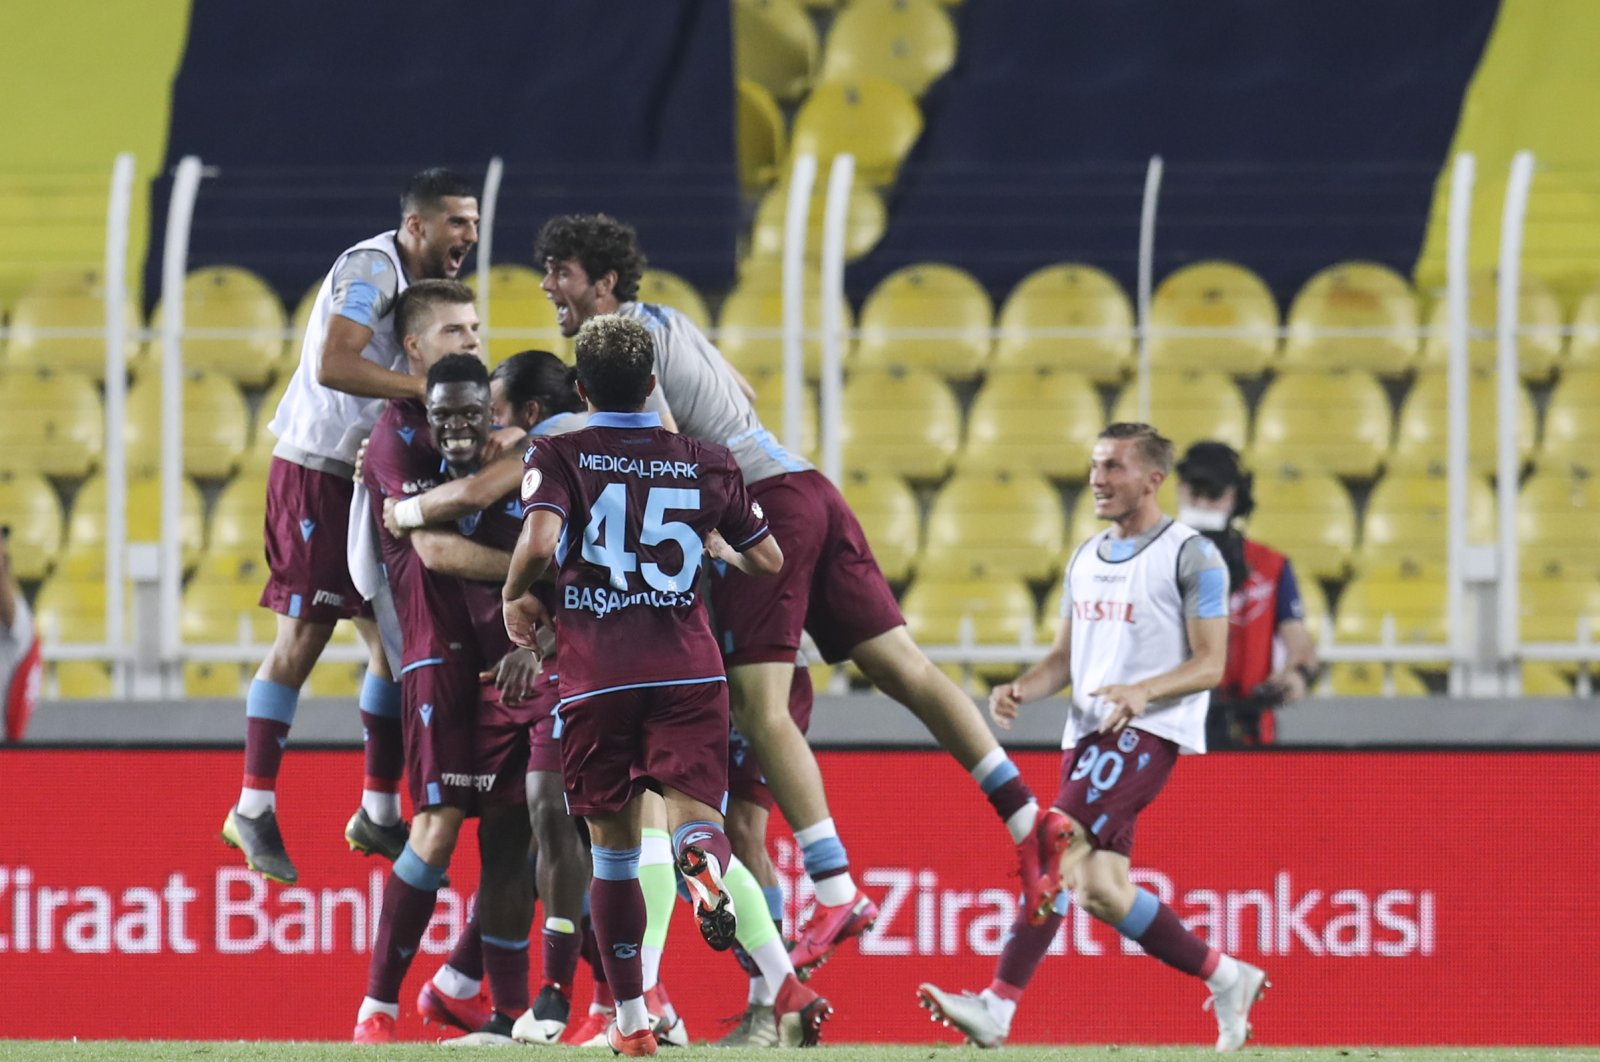 Trabzonspor players celebrate a goal during Ziraat Turkish Cup football match between Fenerbahçe and Trabzonspor at Ülker Stadium in Istanbul, June 16, 2020. (AA Photo)